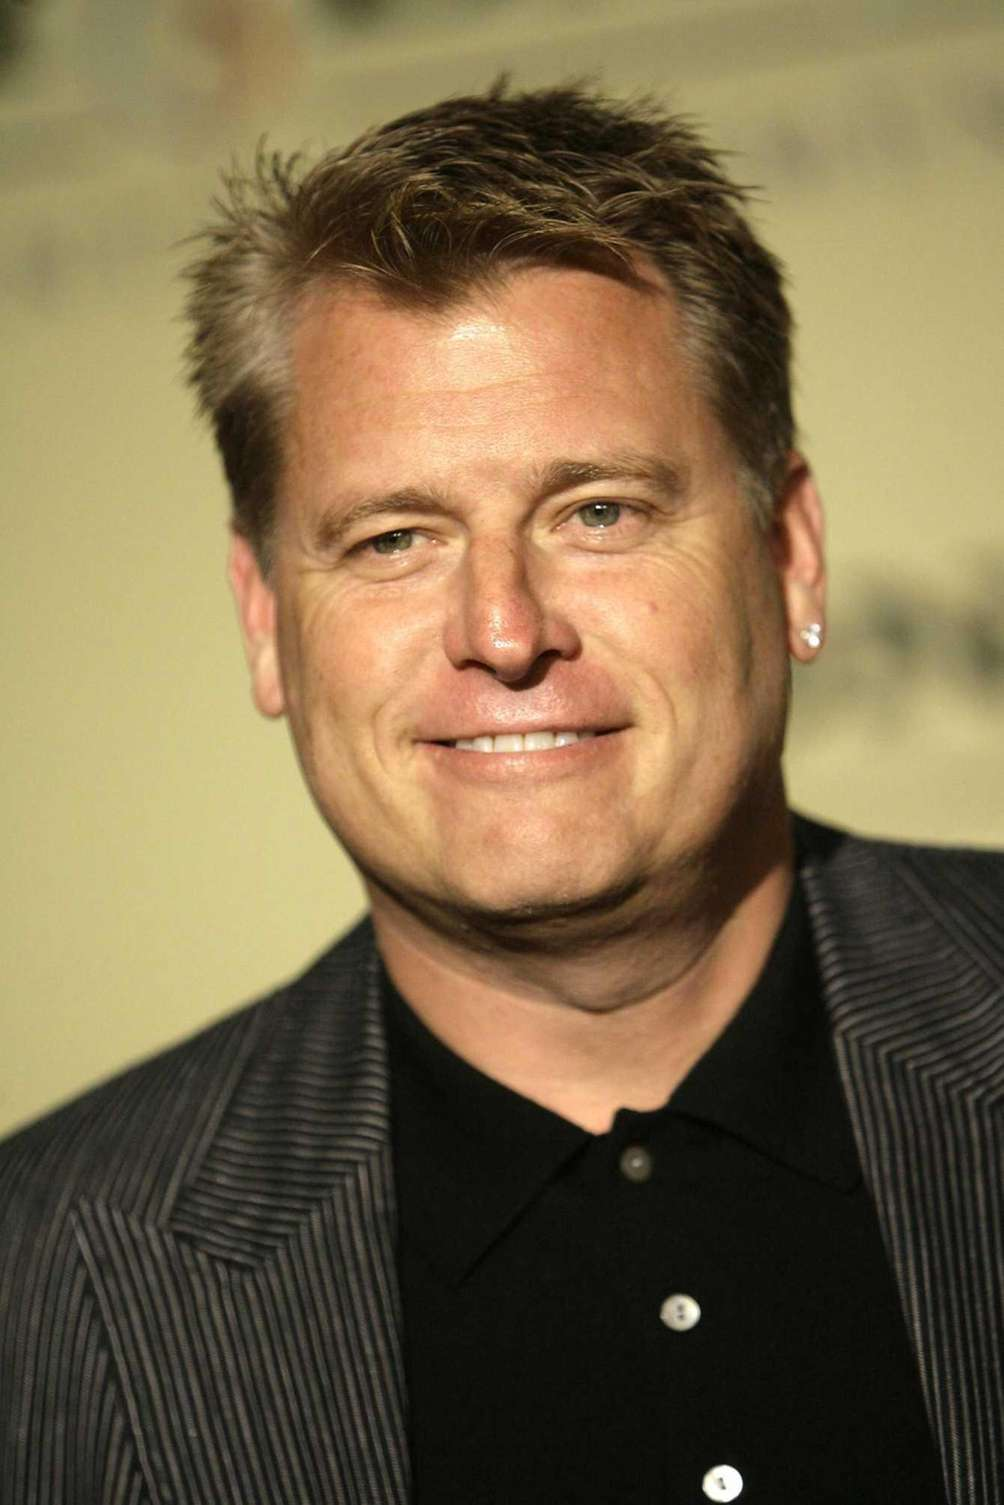 Joe Simpson, who is father to Jessica and